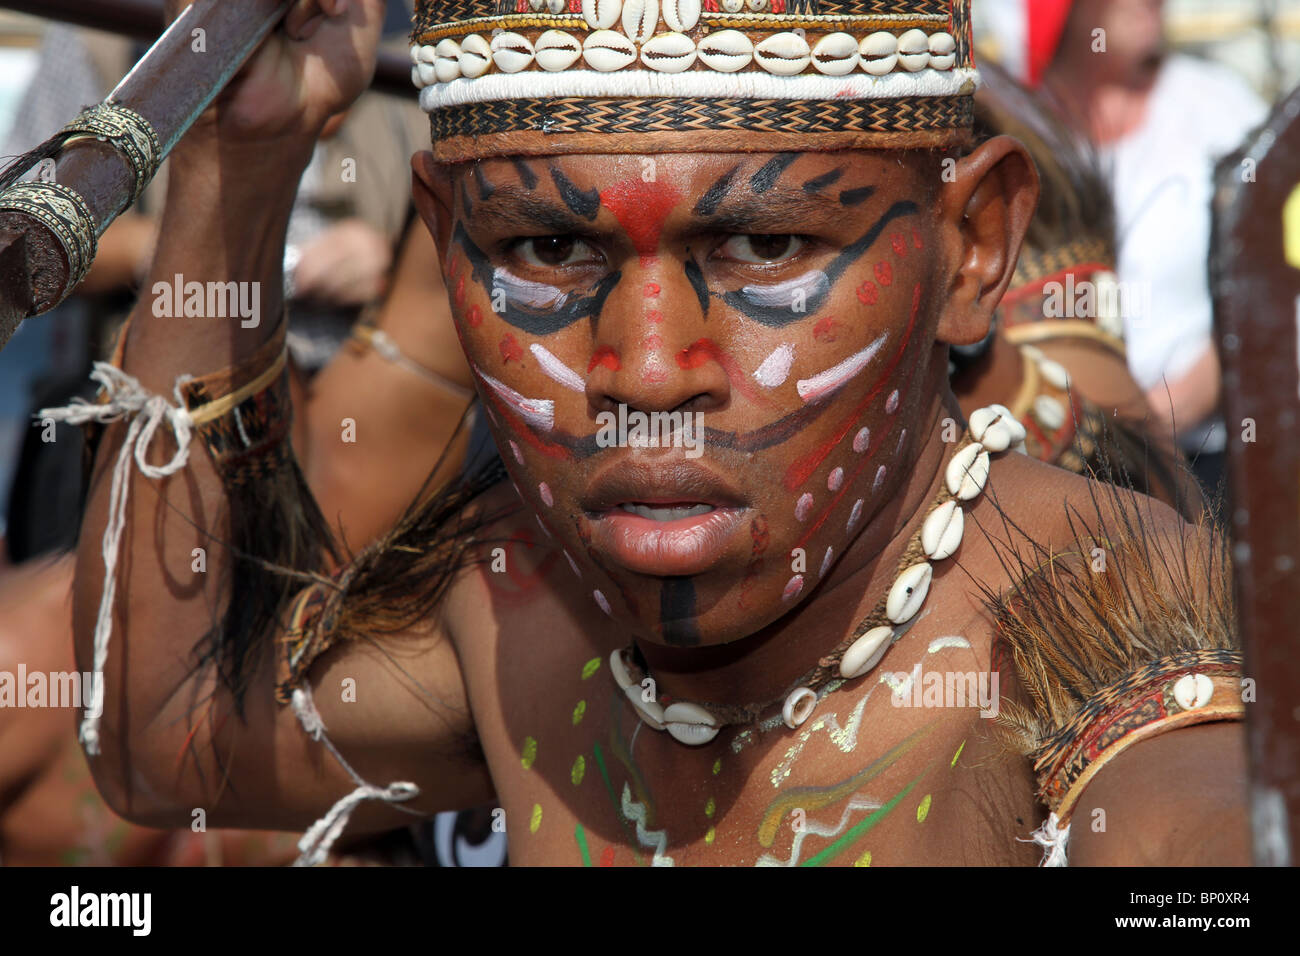 Indonesian Face Paint Indonesia Travel Bali Asian Face